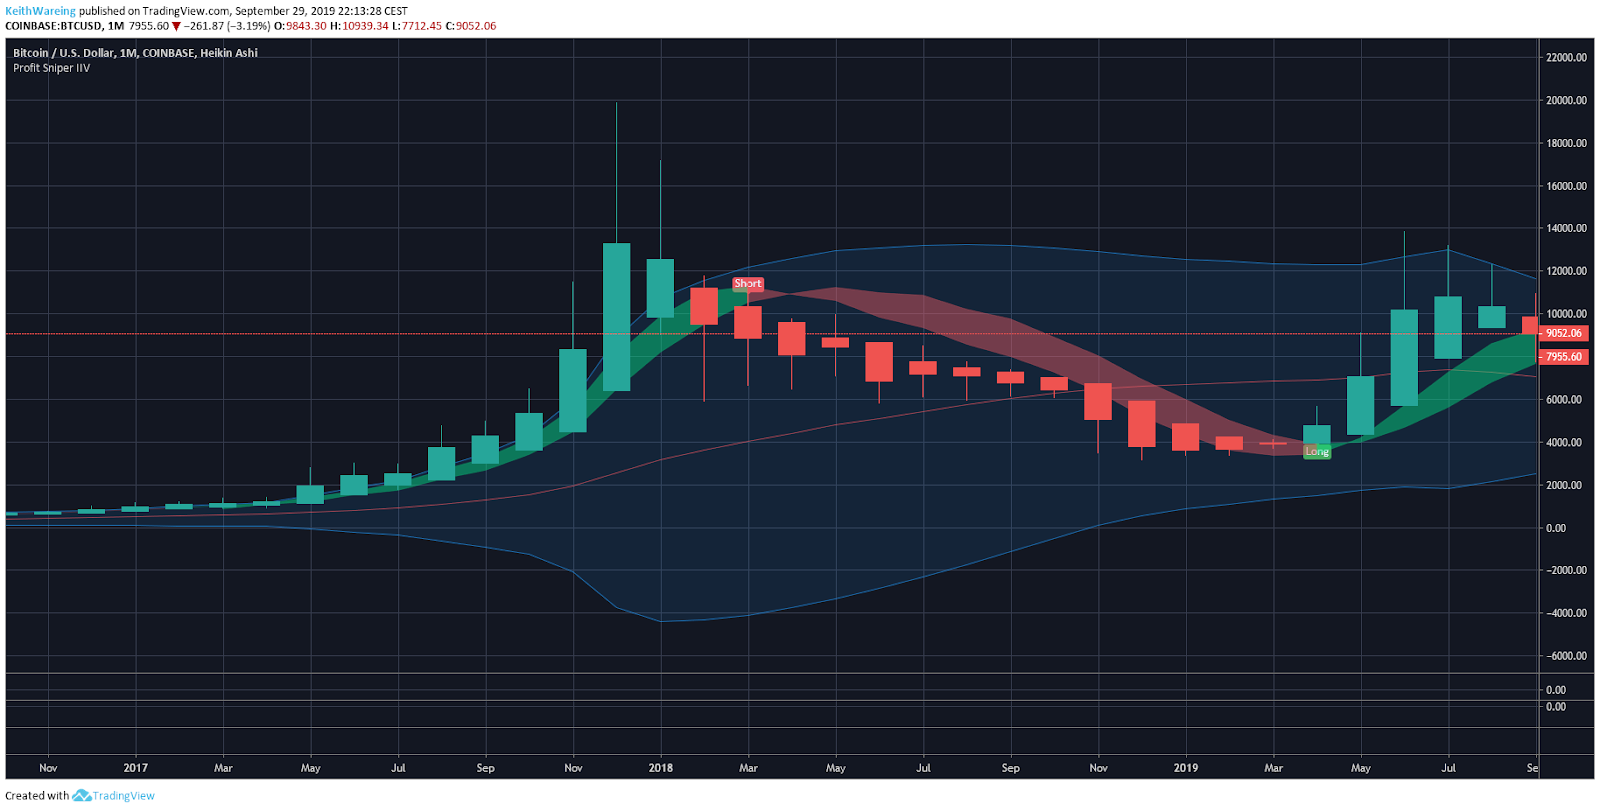 BTC/USD Monthly chart